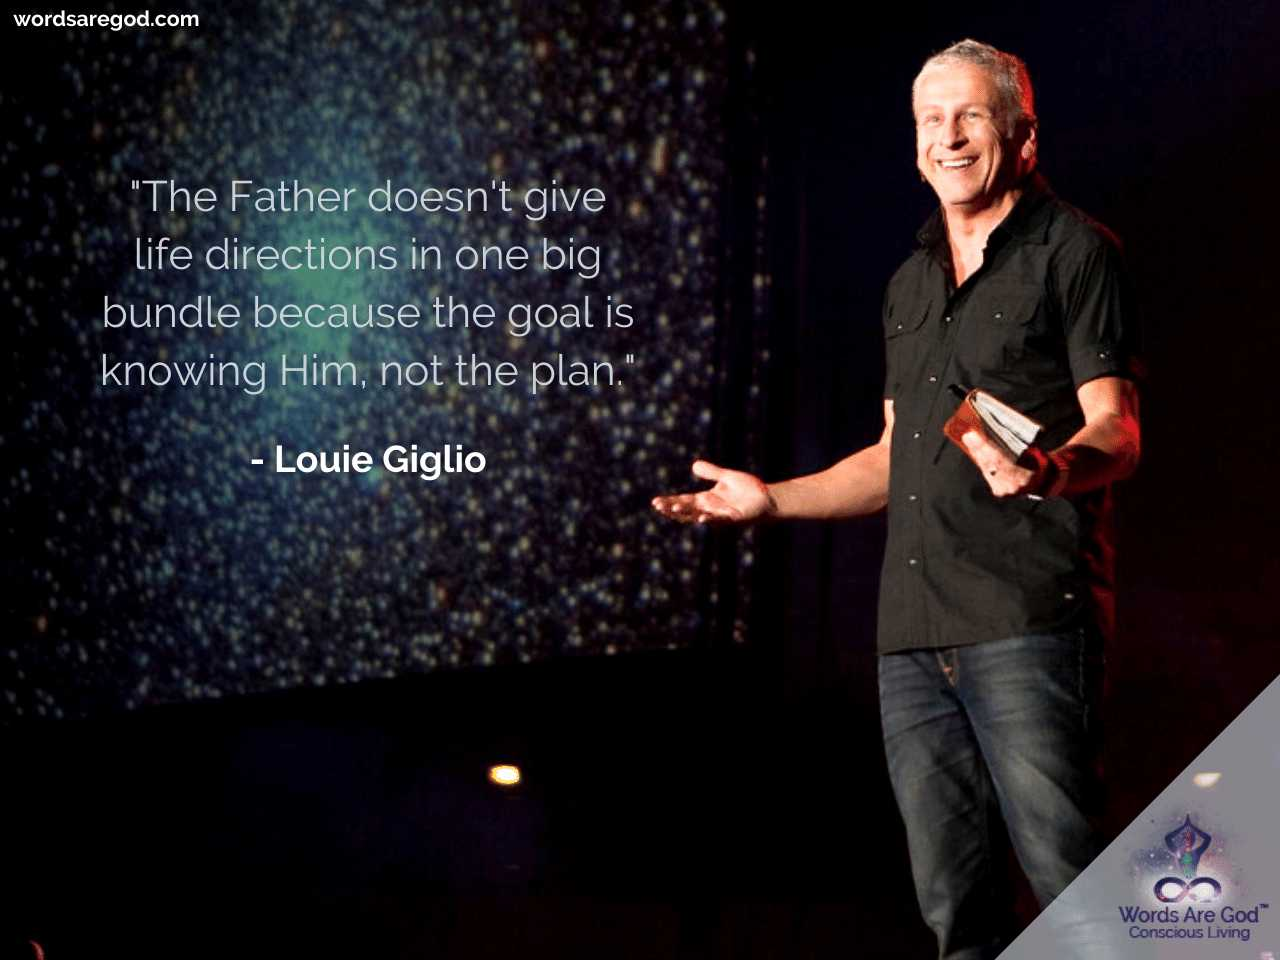 Louie Giglio Inspirational Quote